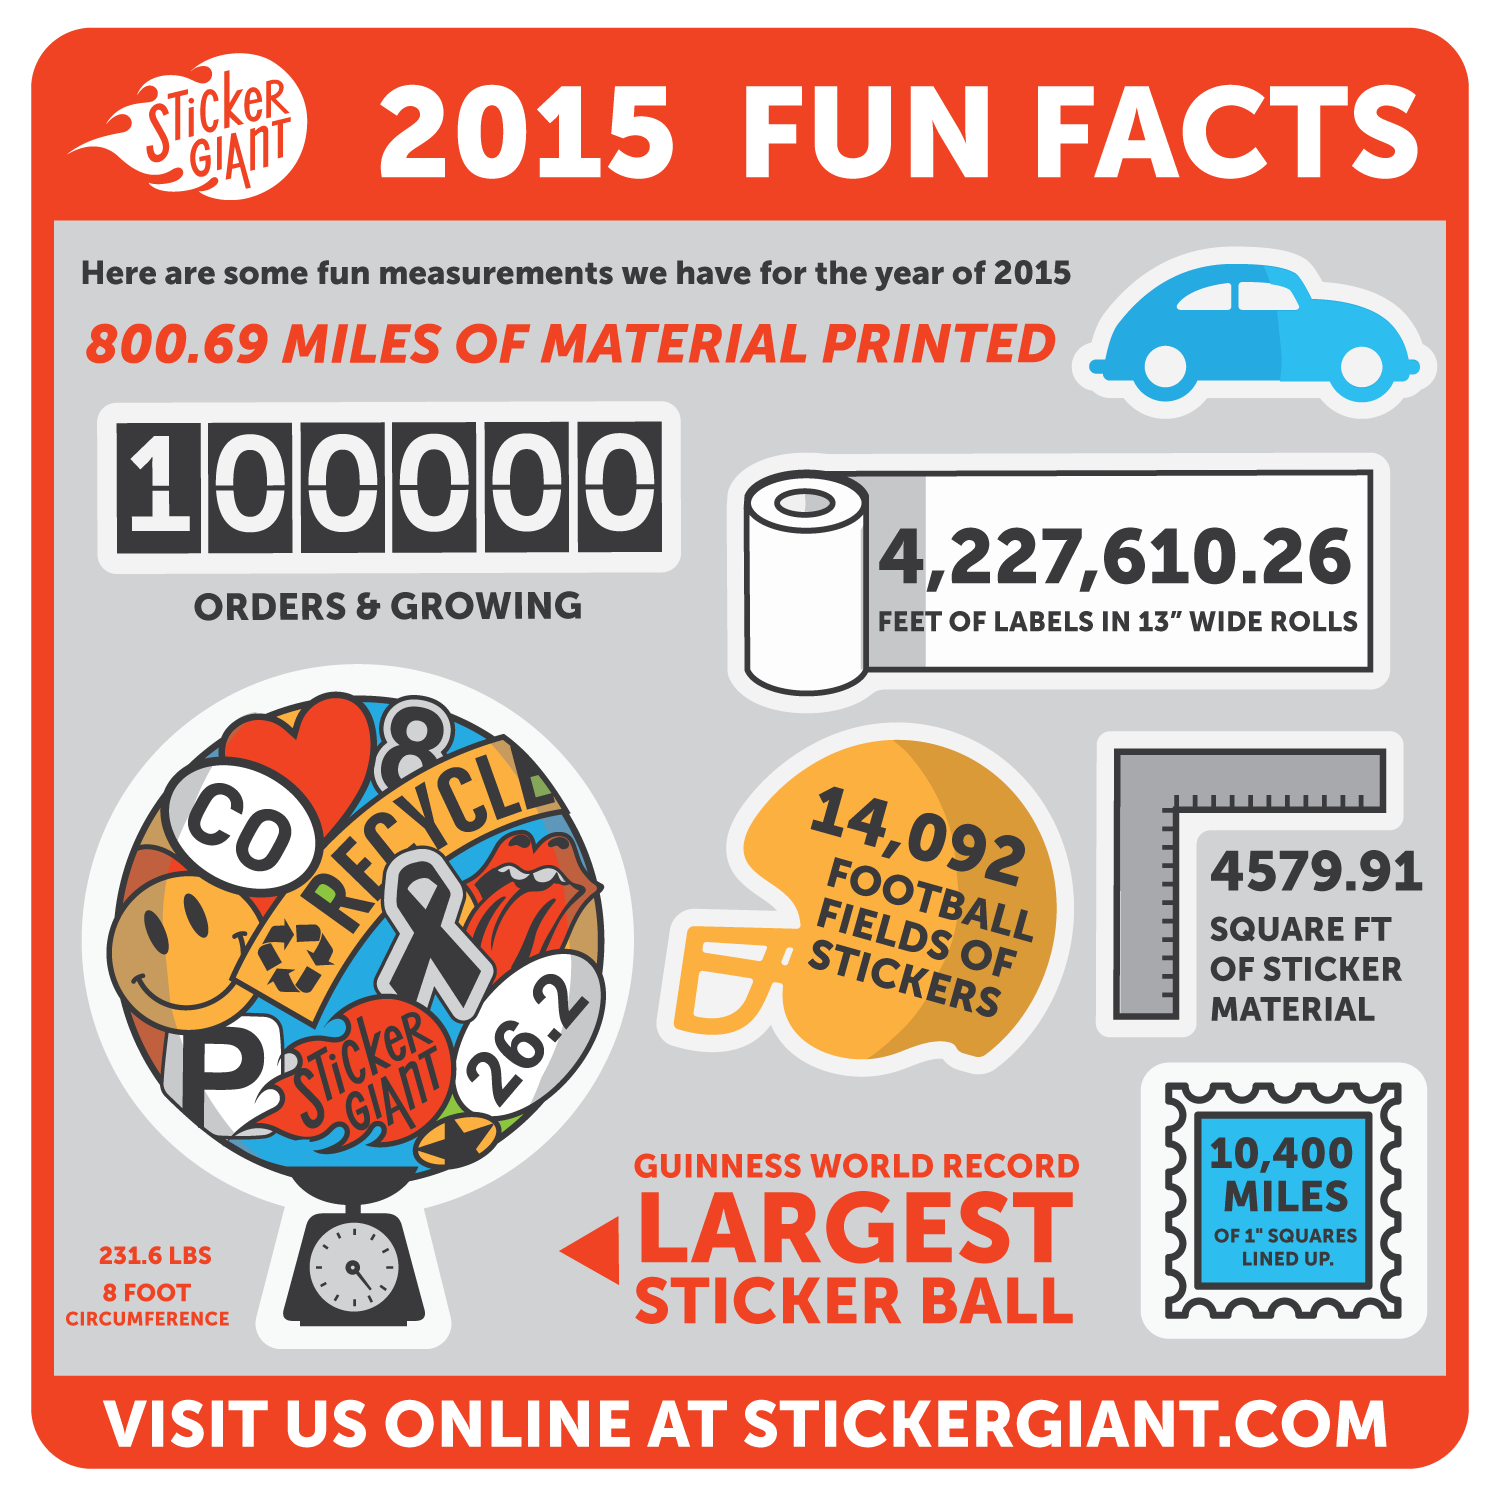 StickerGiantInfographic.png